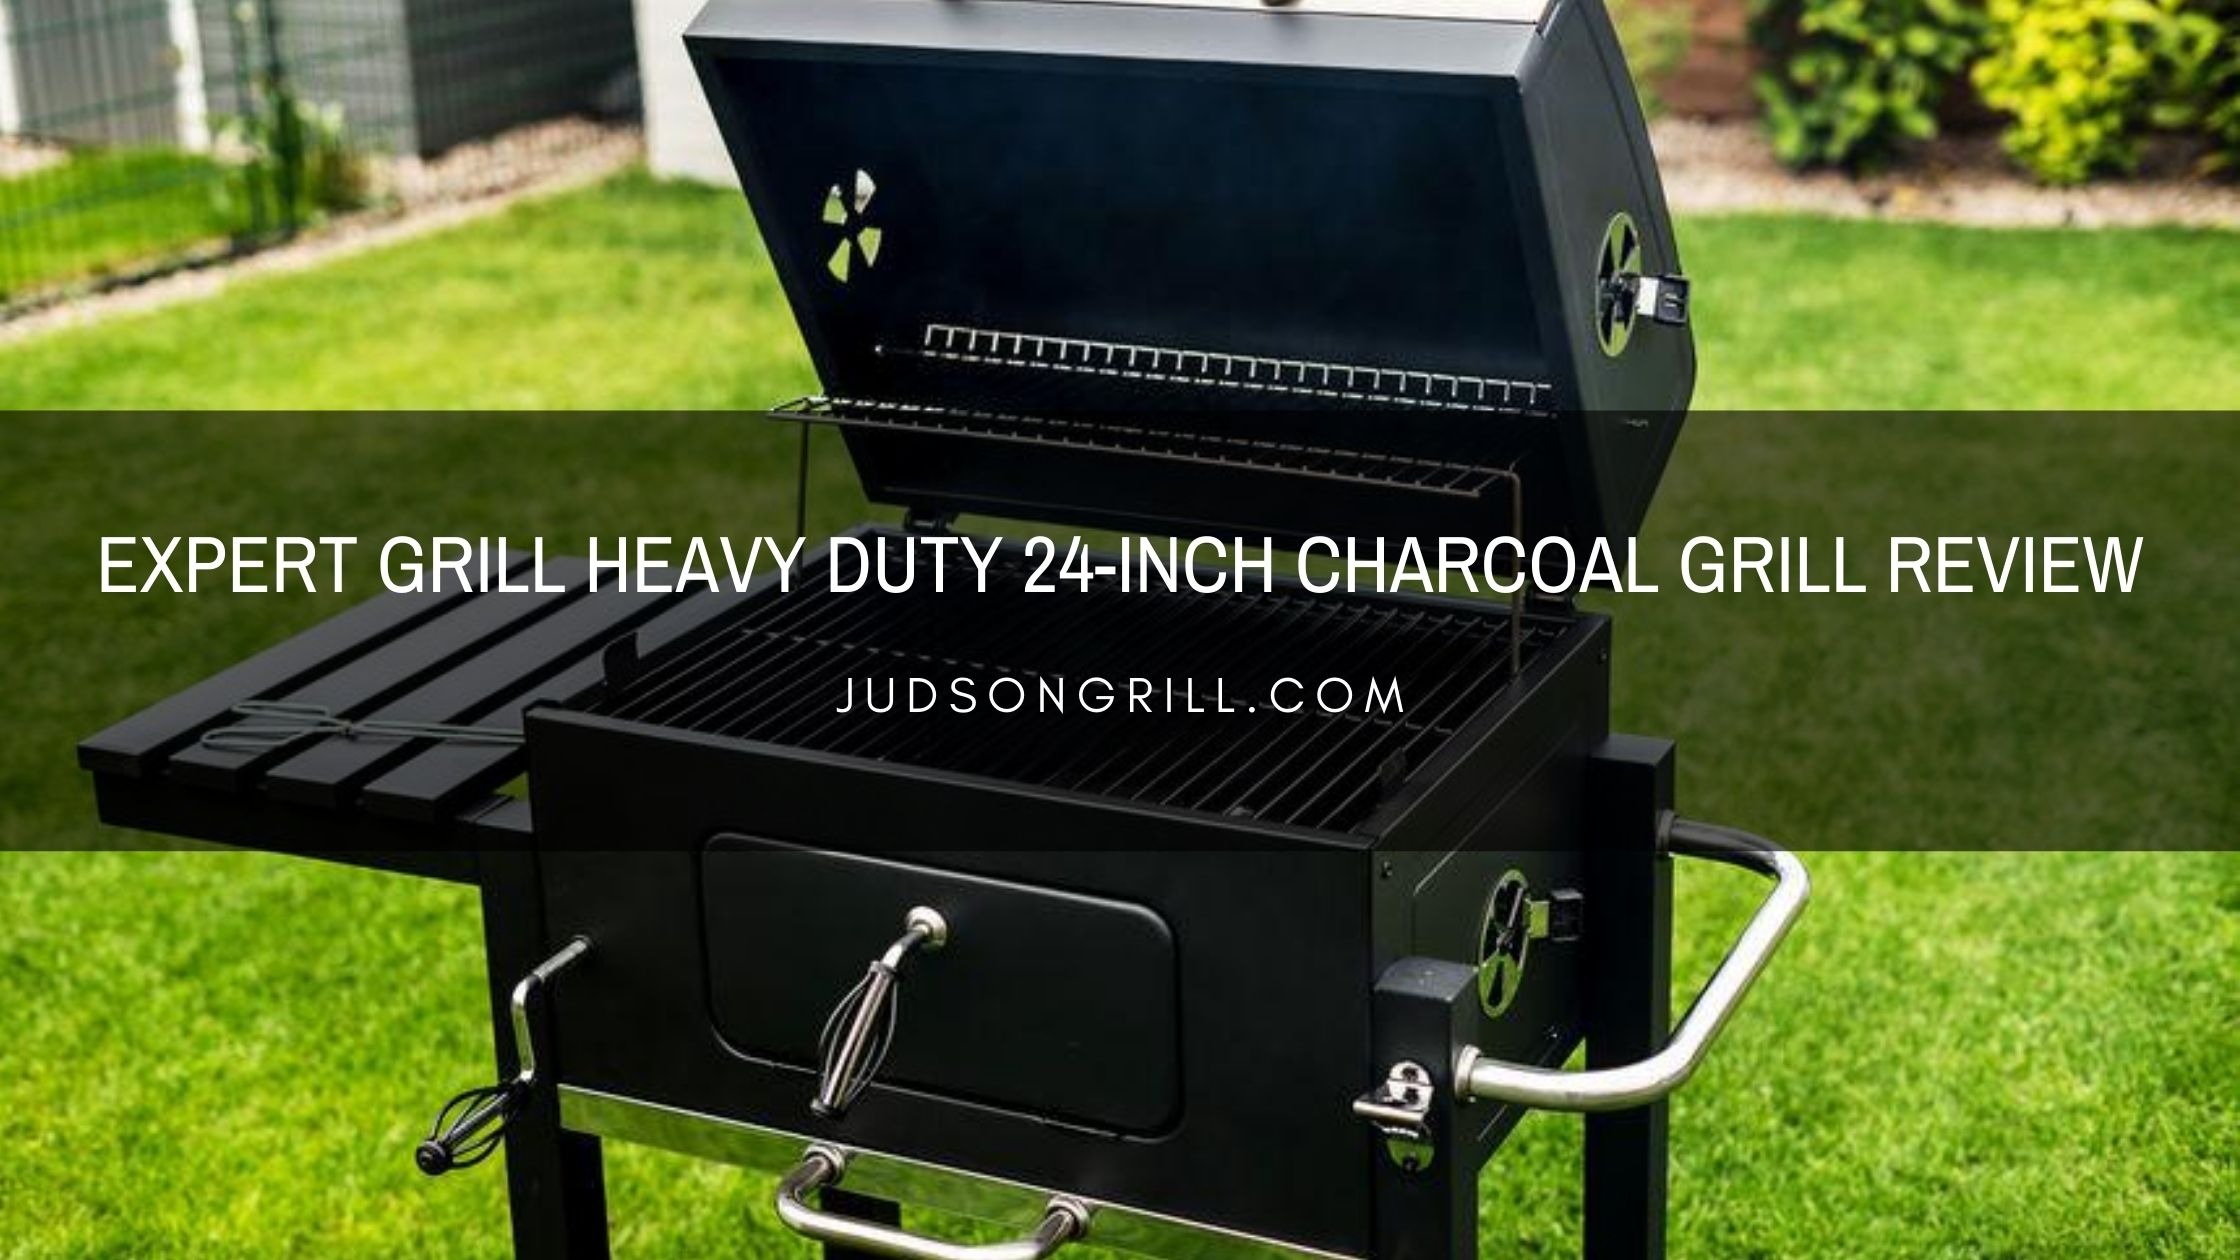 Expert Grill Heavy Duty 24-inch Charcoal Grill Review